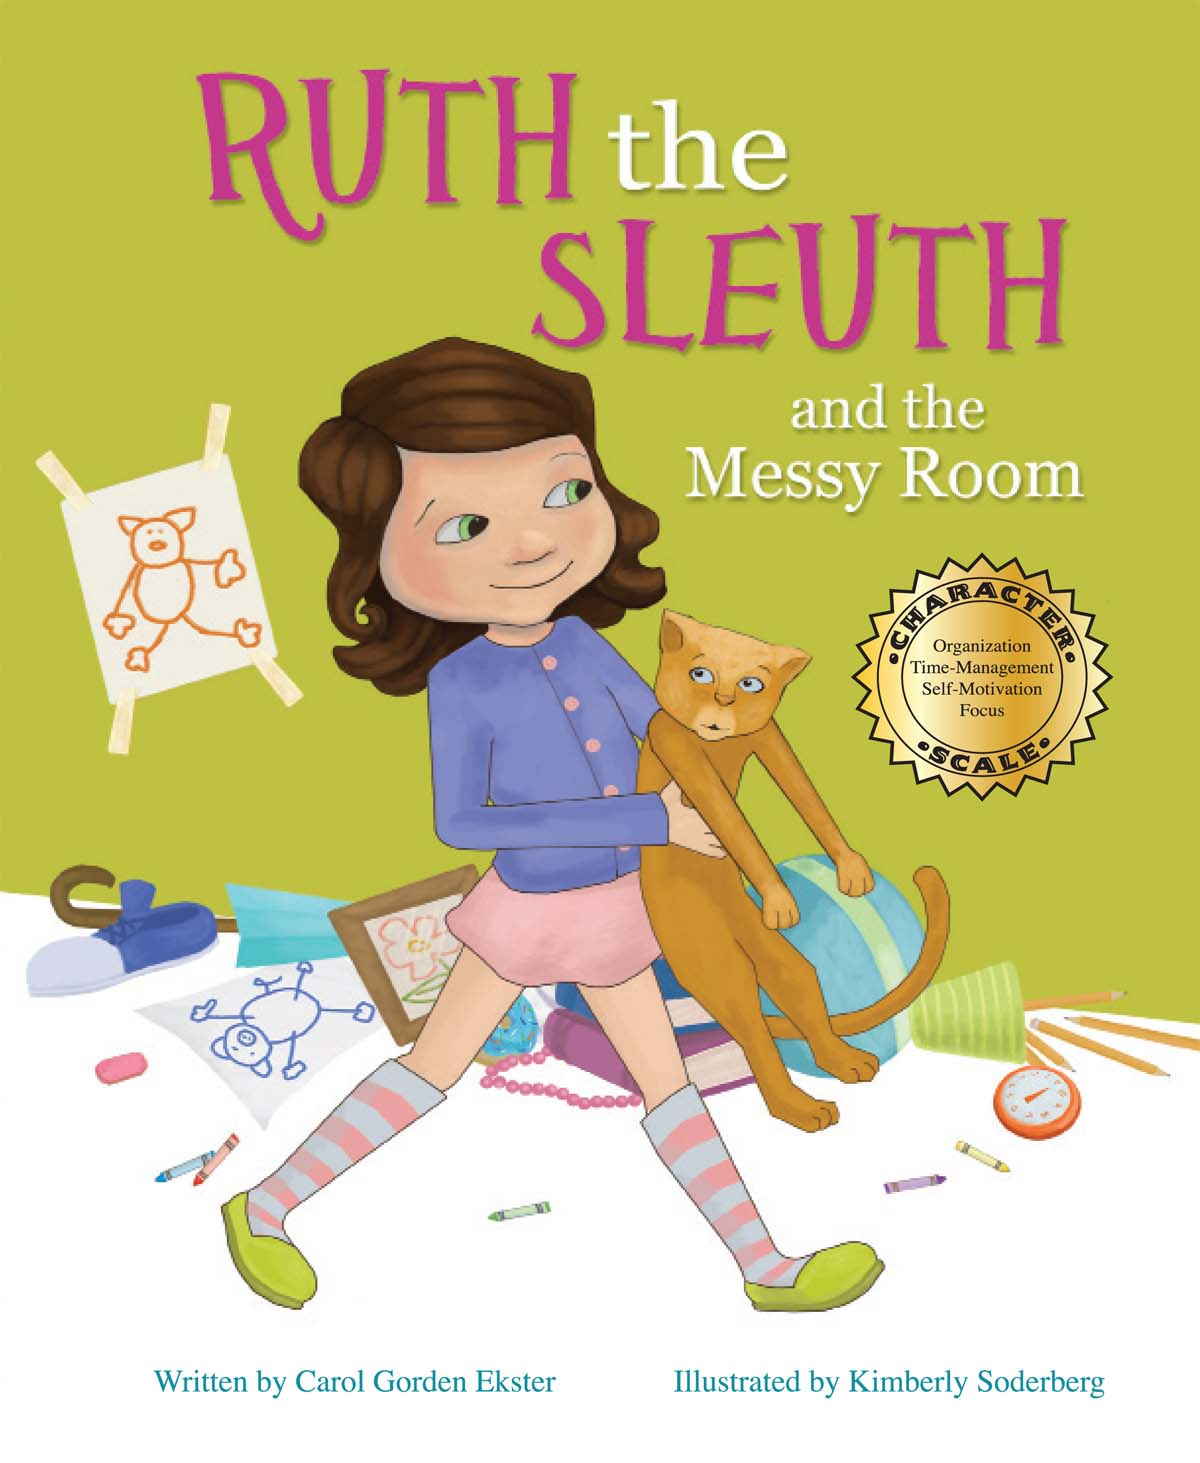 Ruth the Slueth and the Messy Room